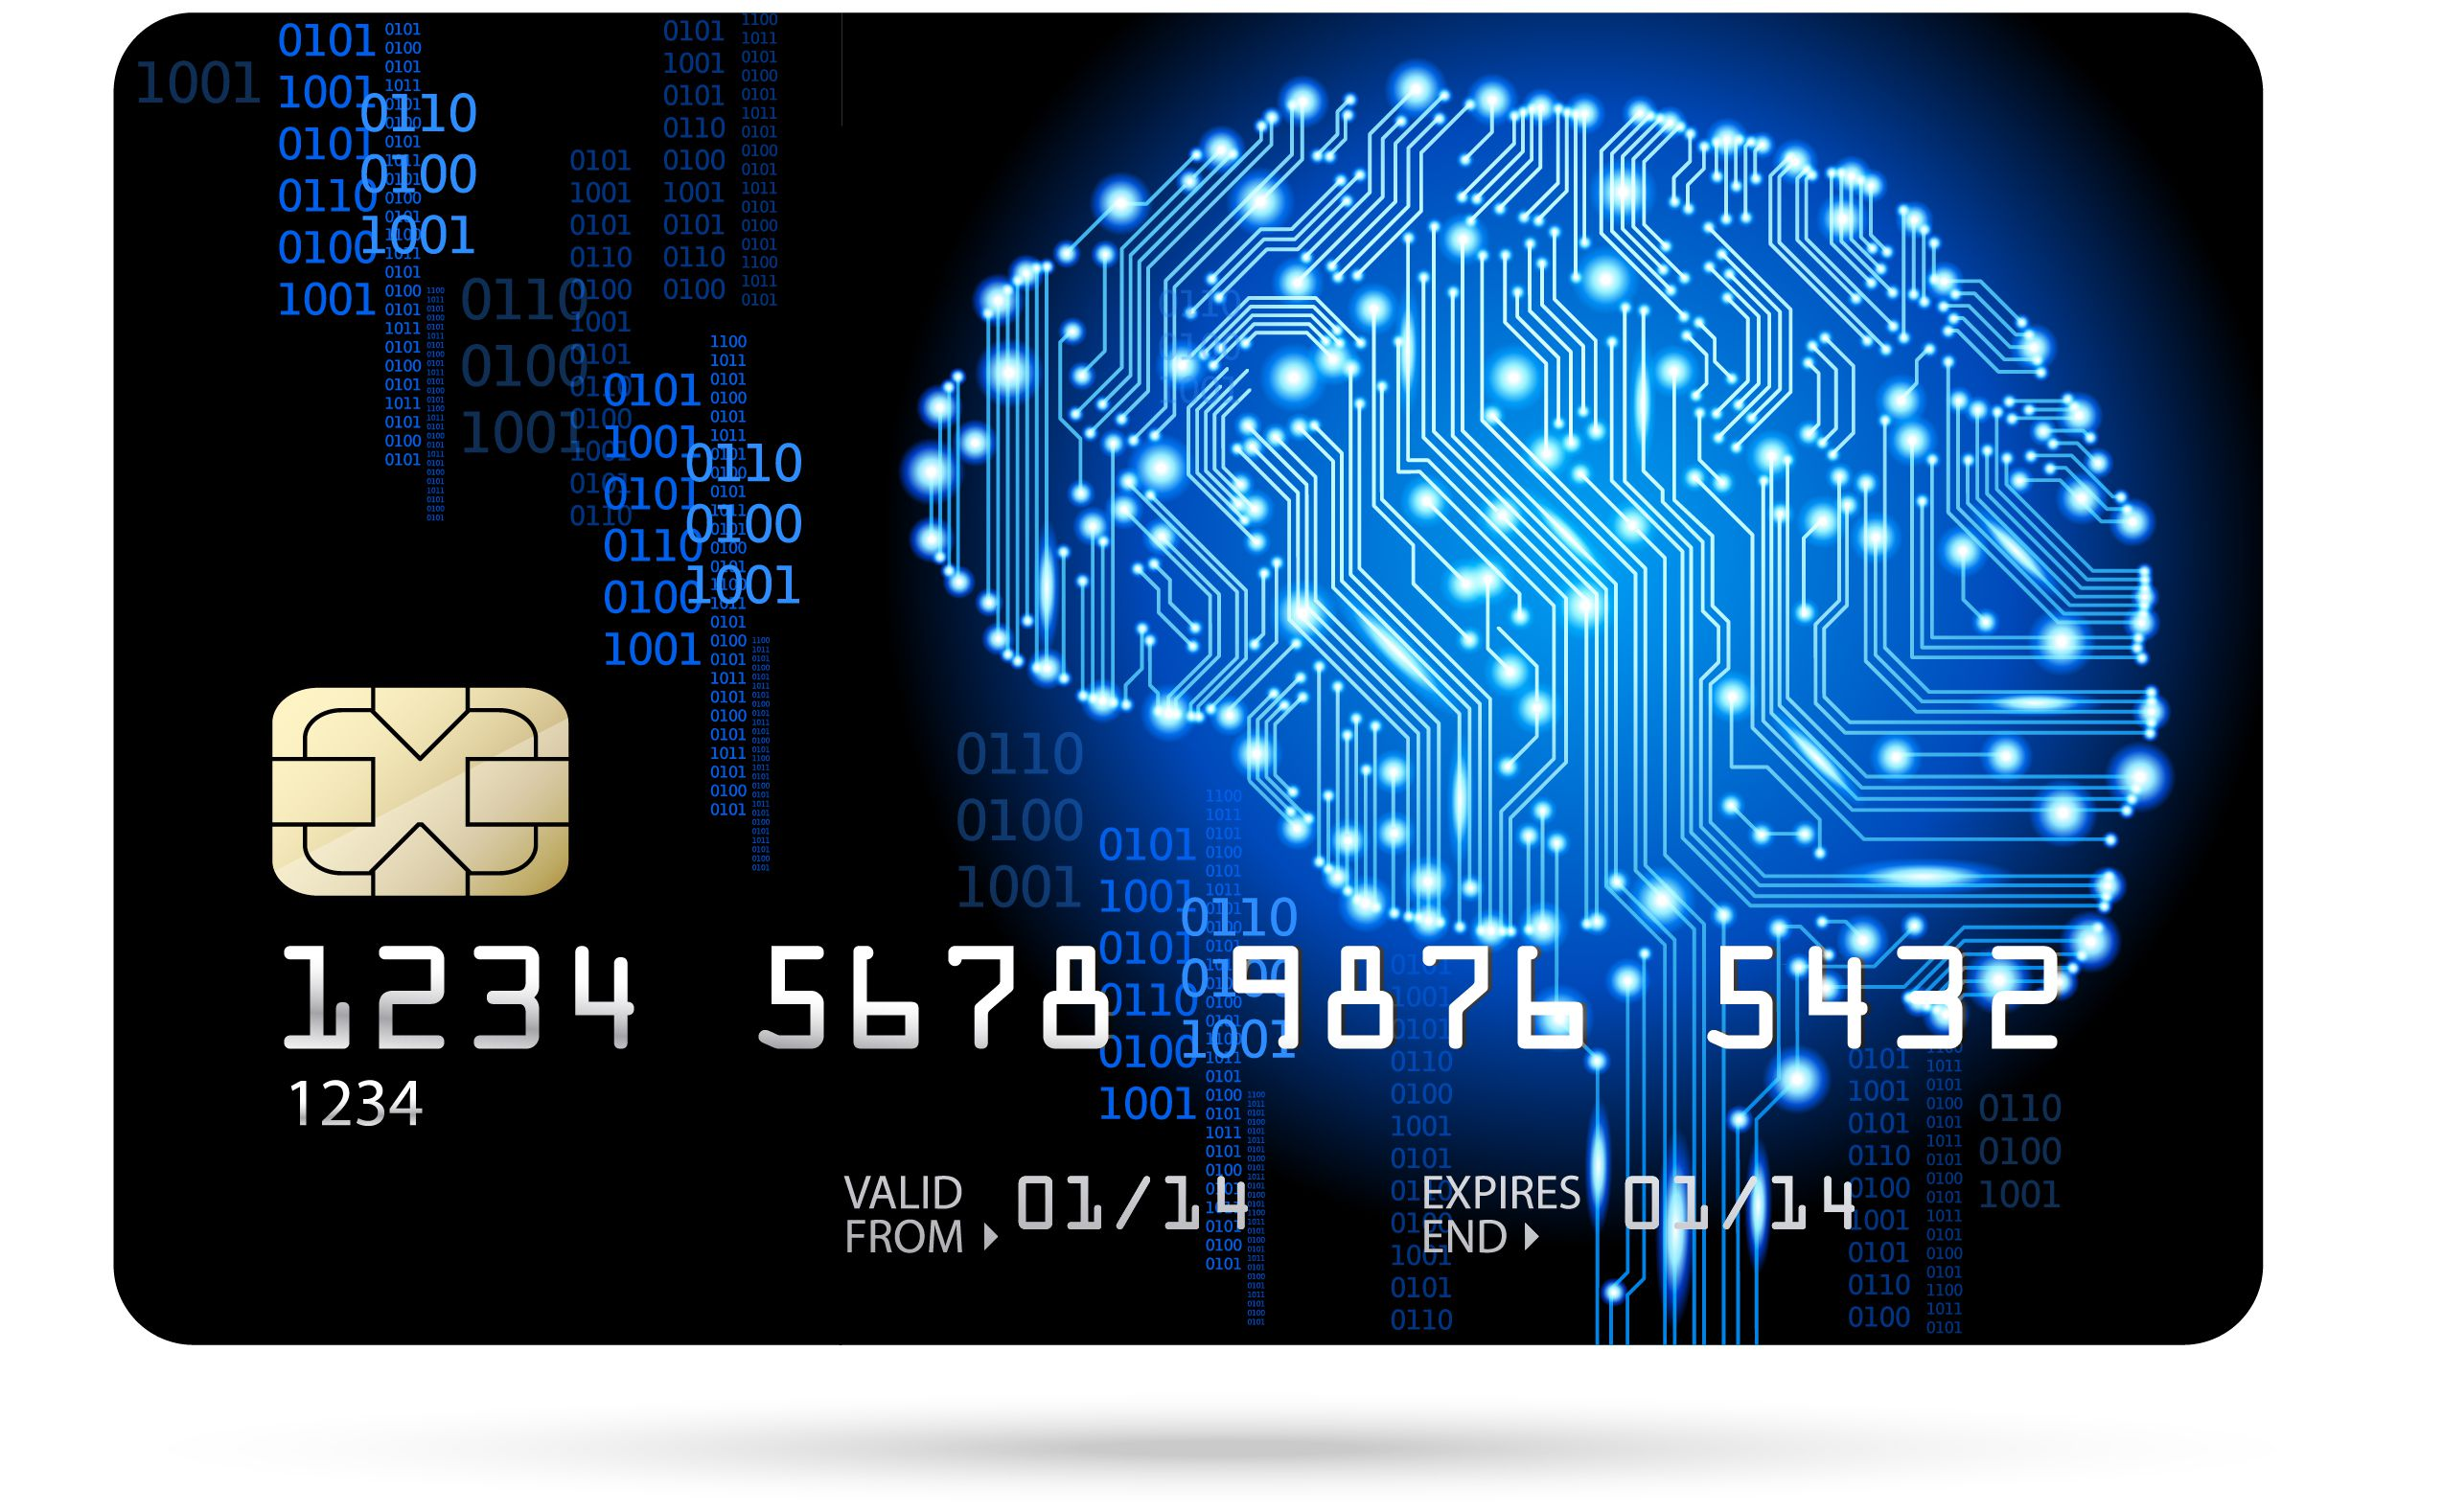 The credit cards and the antifraud arms race - The Boston Globe